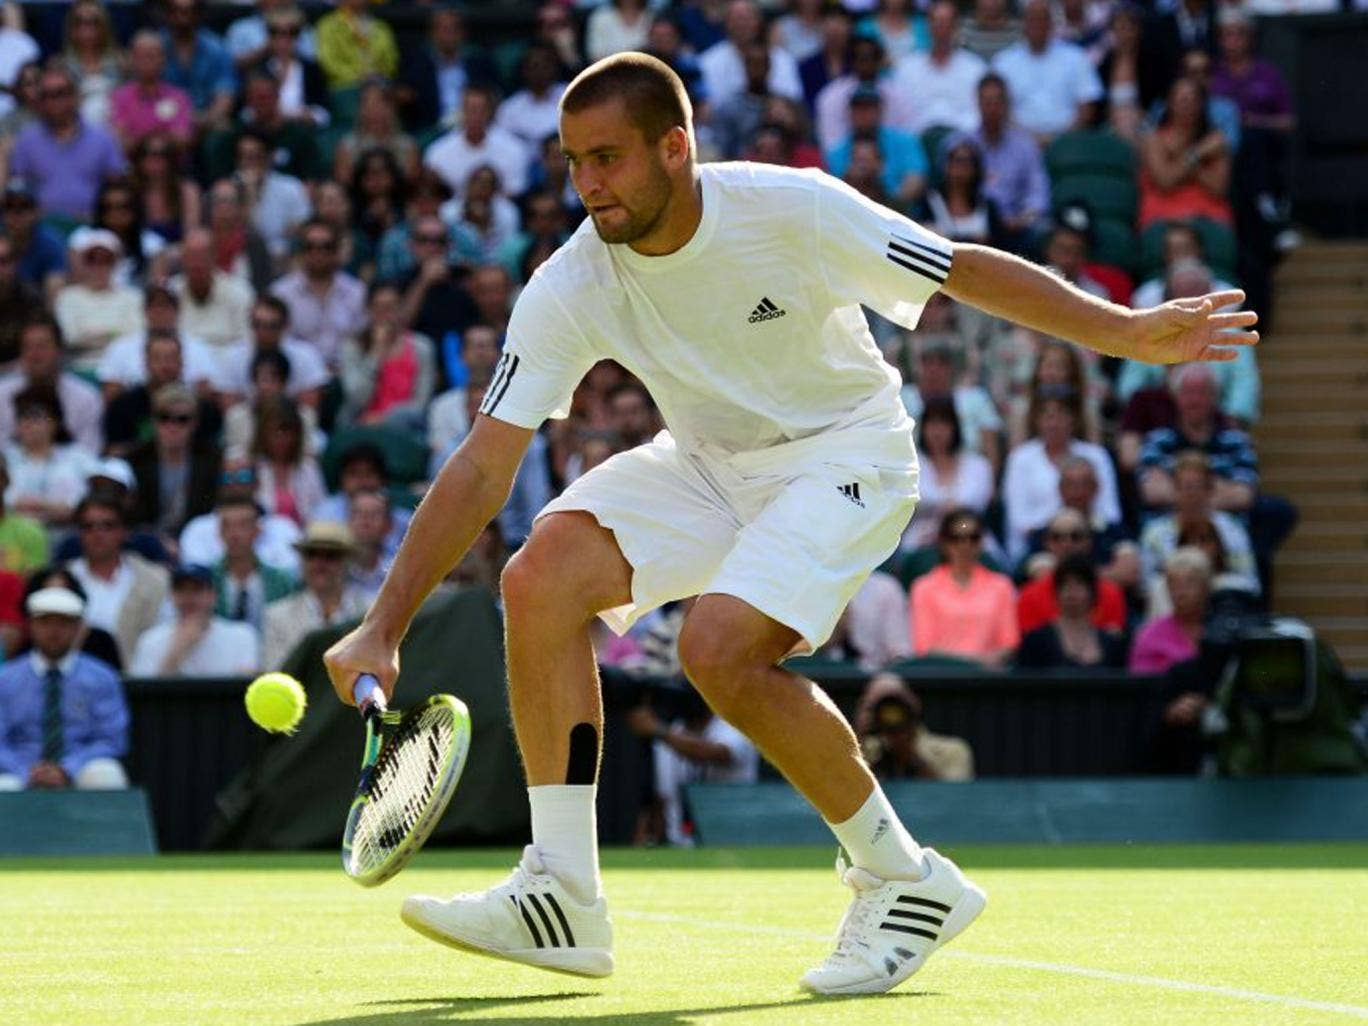 Mikhail Youzhny led 5-2 in the second but still lost the set